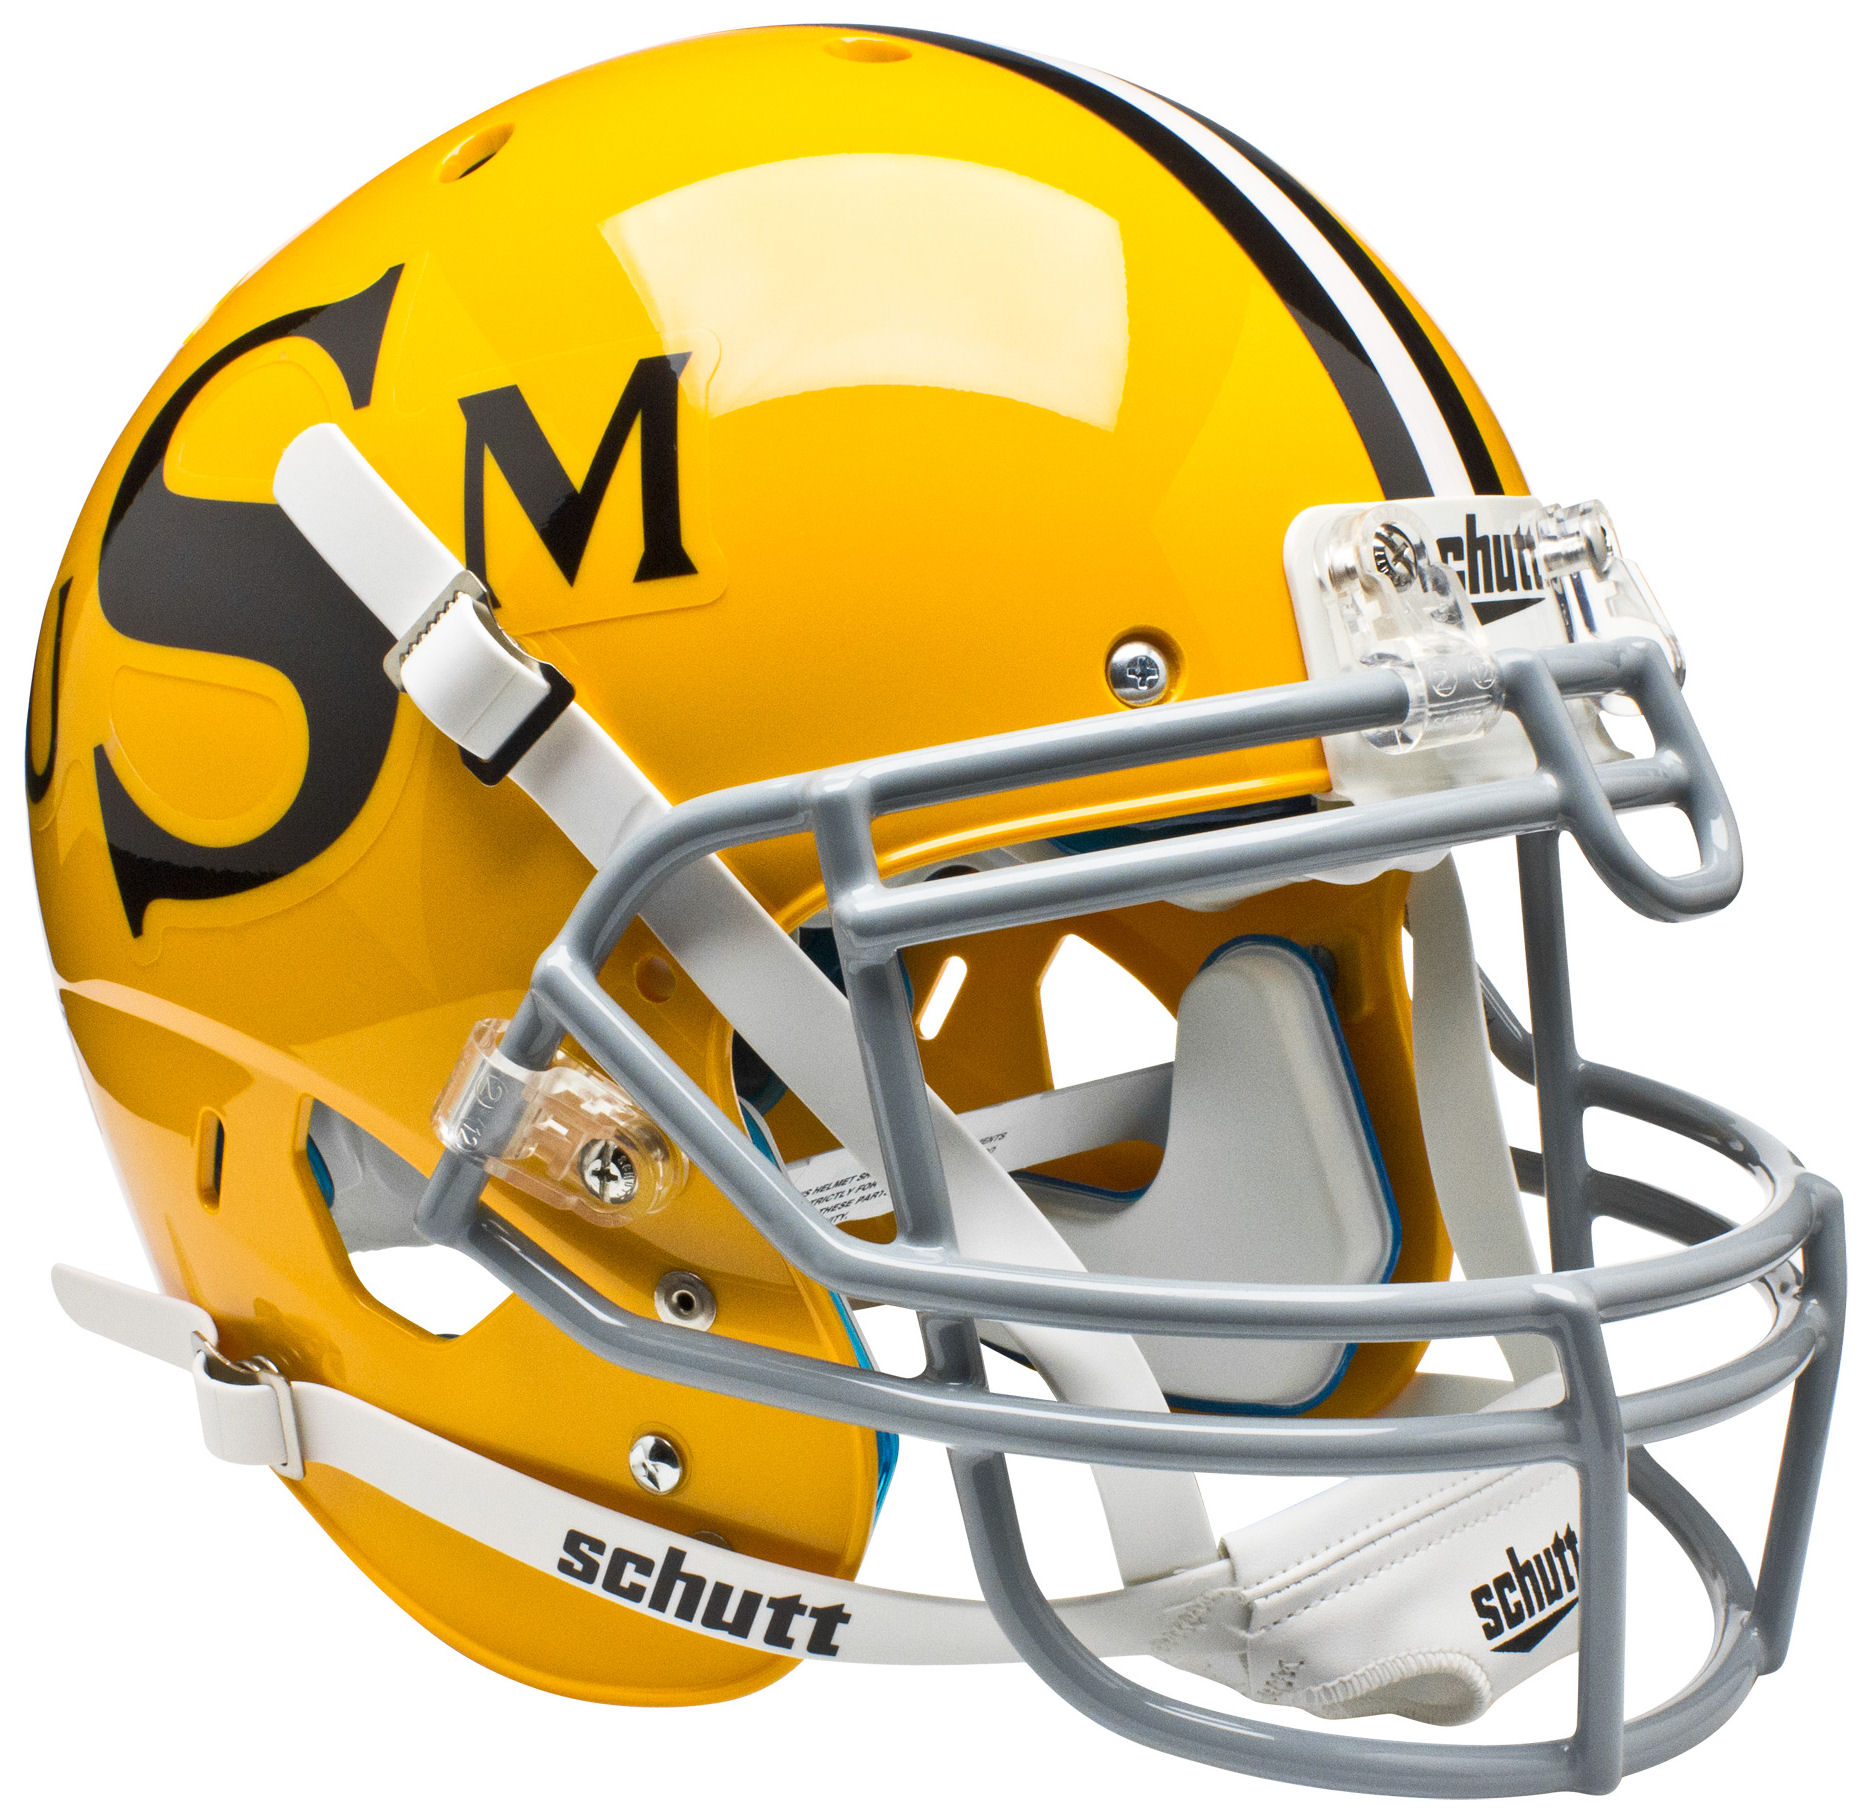 Southern Mississippi Golden Eagles Authentic College XP Football Helmet Schutt <B>Gold</B>